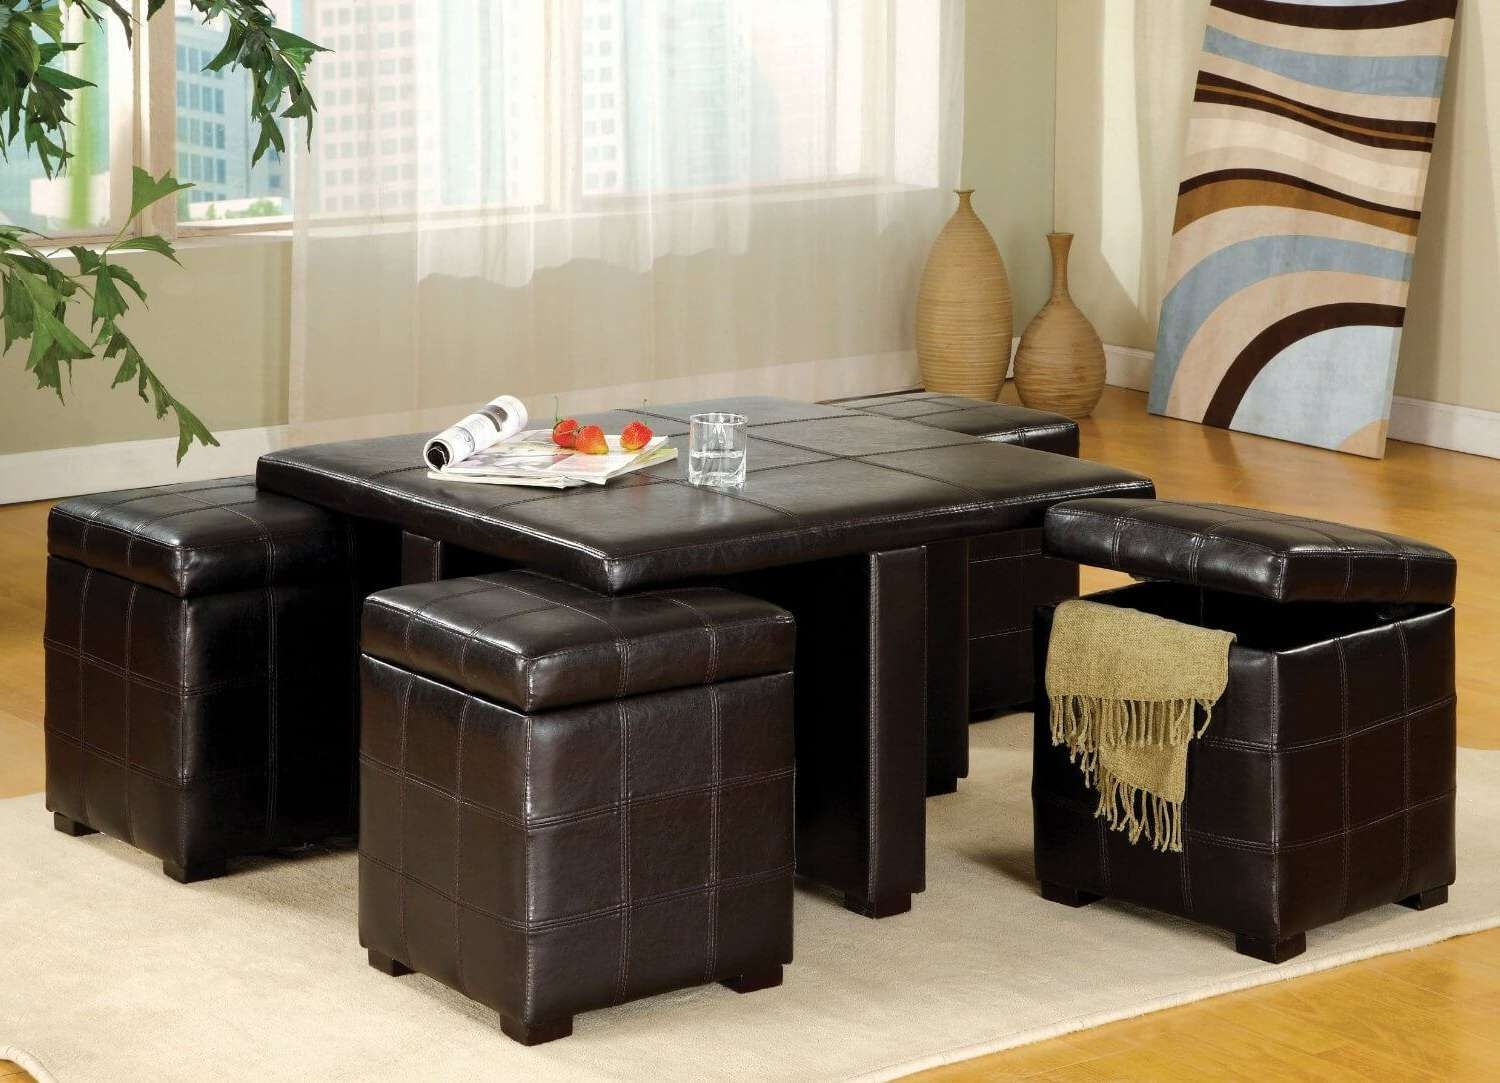 Preferred Brown Leather Ottoman Coffee Tables Pertaining To 36 Top Brown Leather Ottoman Coffee Tables (View 13 of 20)